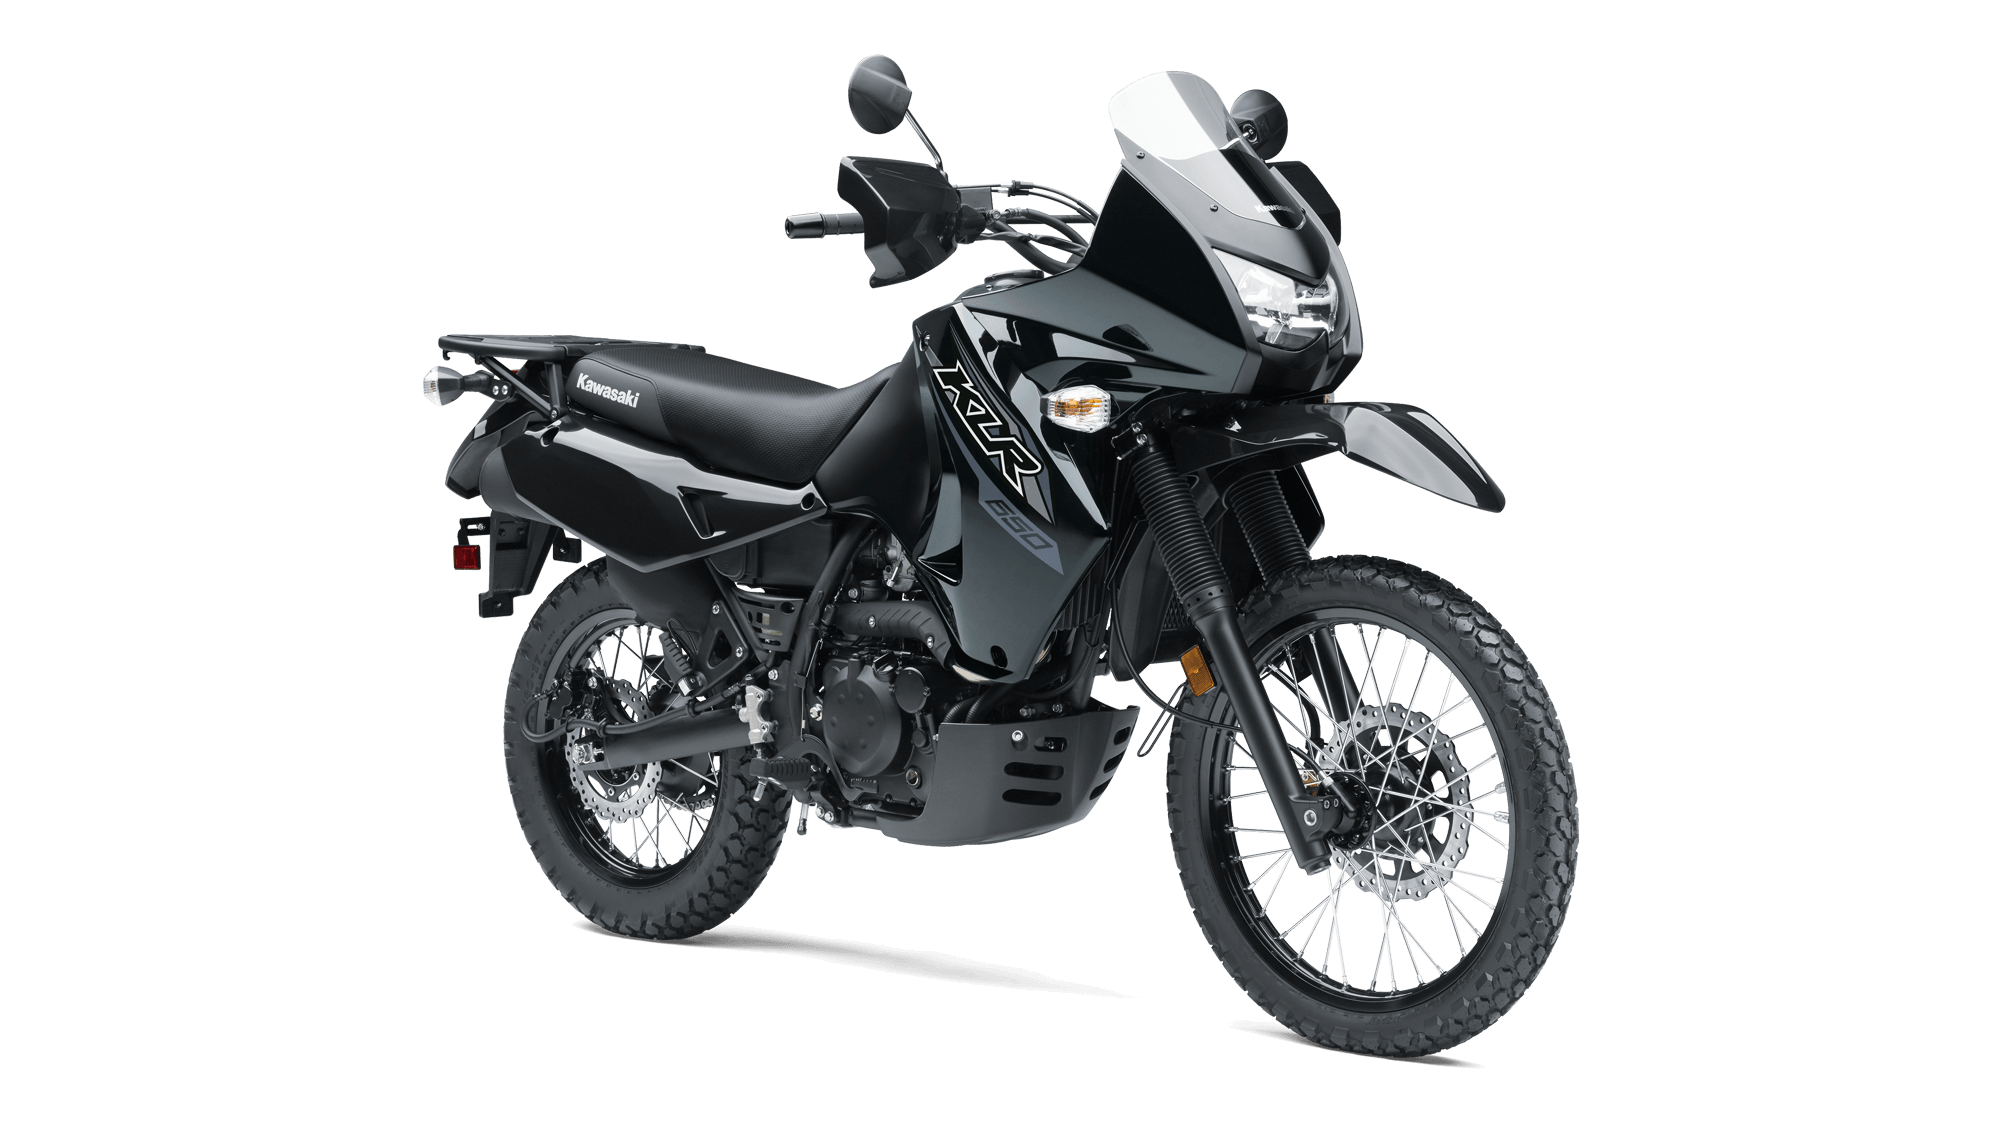 kawasaki klr 250 wiring diagram free download acf15 kawasaki klr 250 wiring diagram free download wiring resources  acf15 kawasaki klr 250 wiring diagram